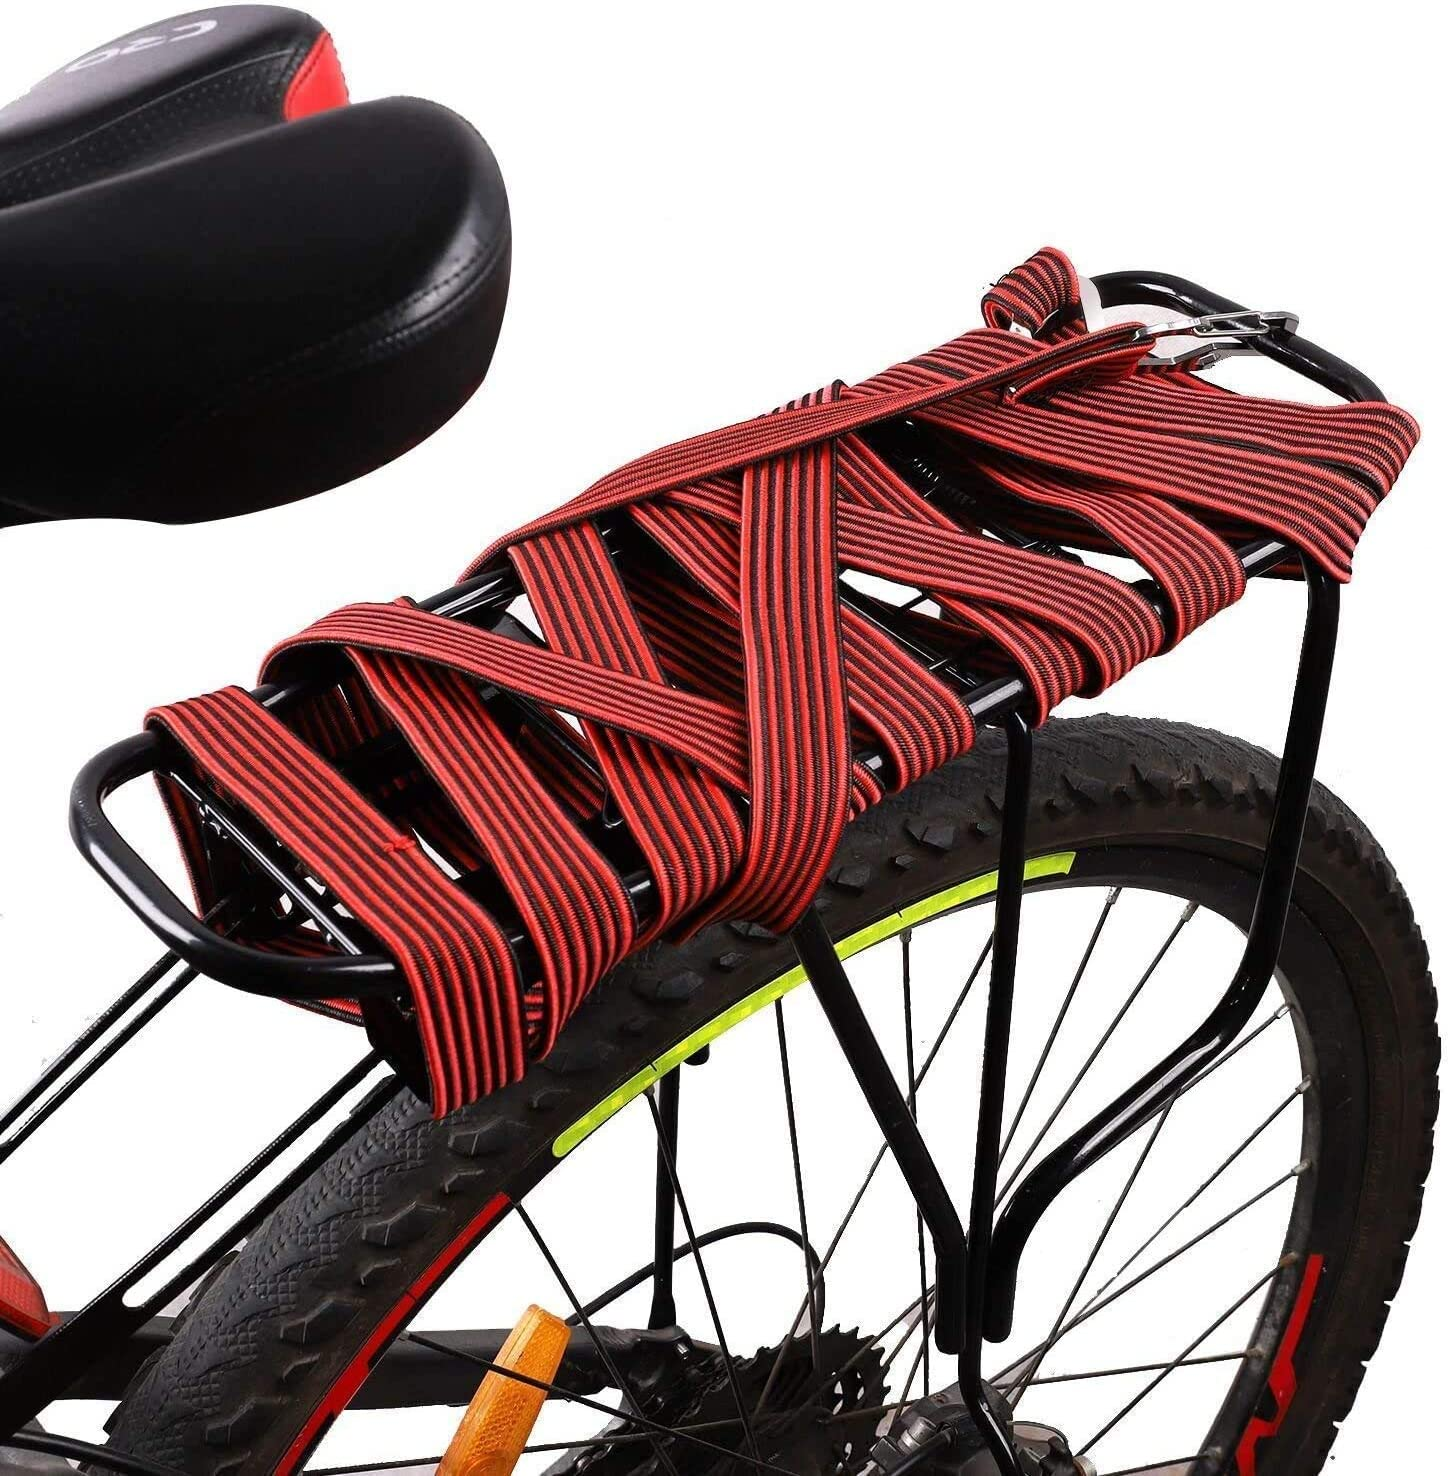 Grneric Long Bungee Cords with Hooks,Bungee Cord,Set Color Flat Stripe Nylon Tension Elastic Band,for Bike Rack//Strollers//Bike//Trash Cans//Truck Tarps//Boats//Trucks//Luggage//Hand Carts